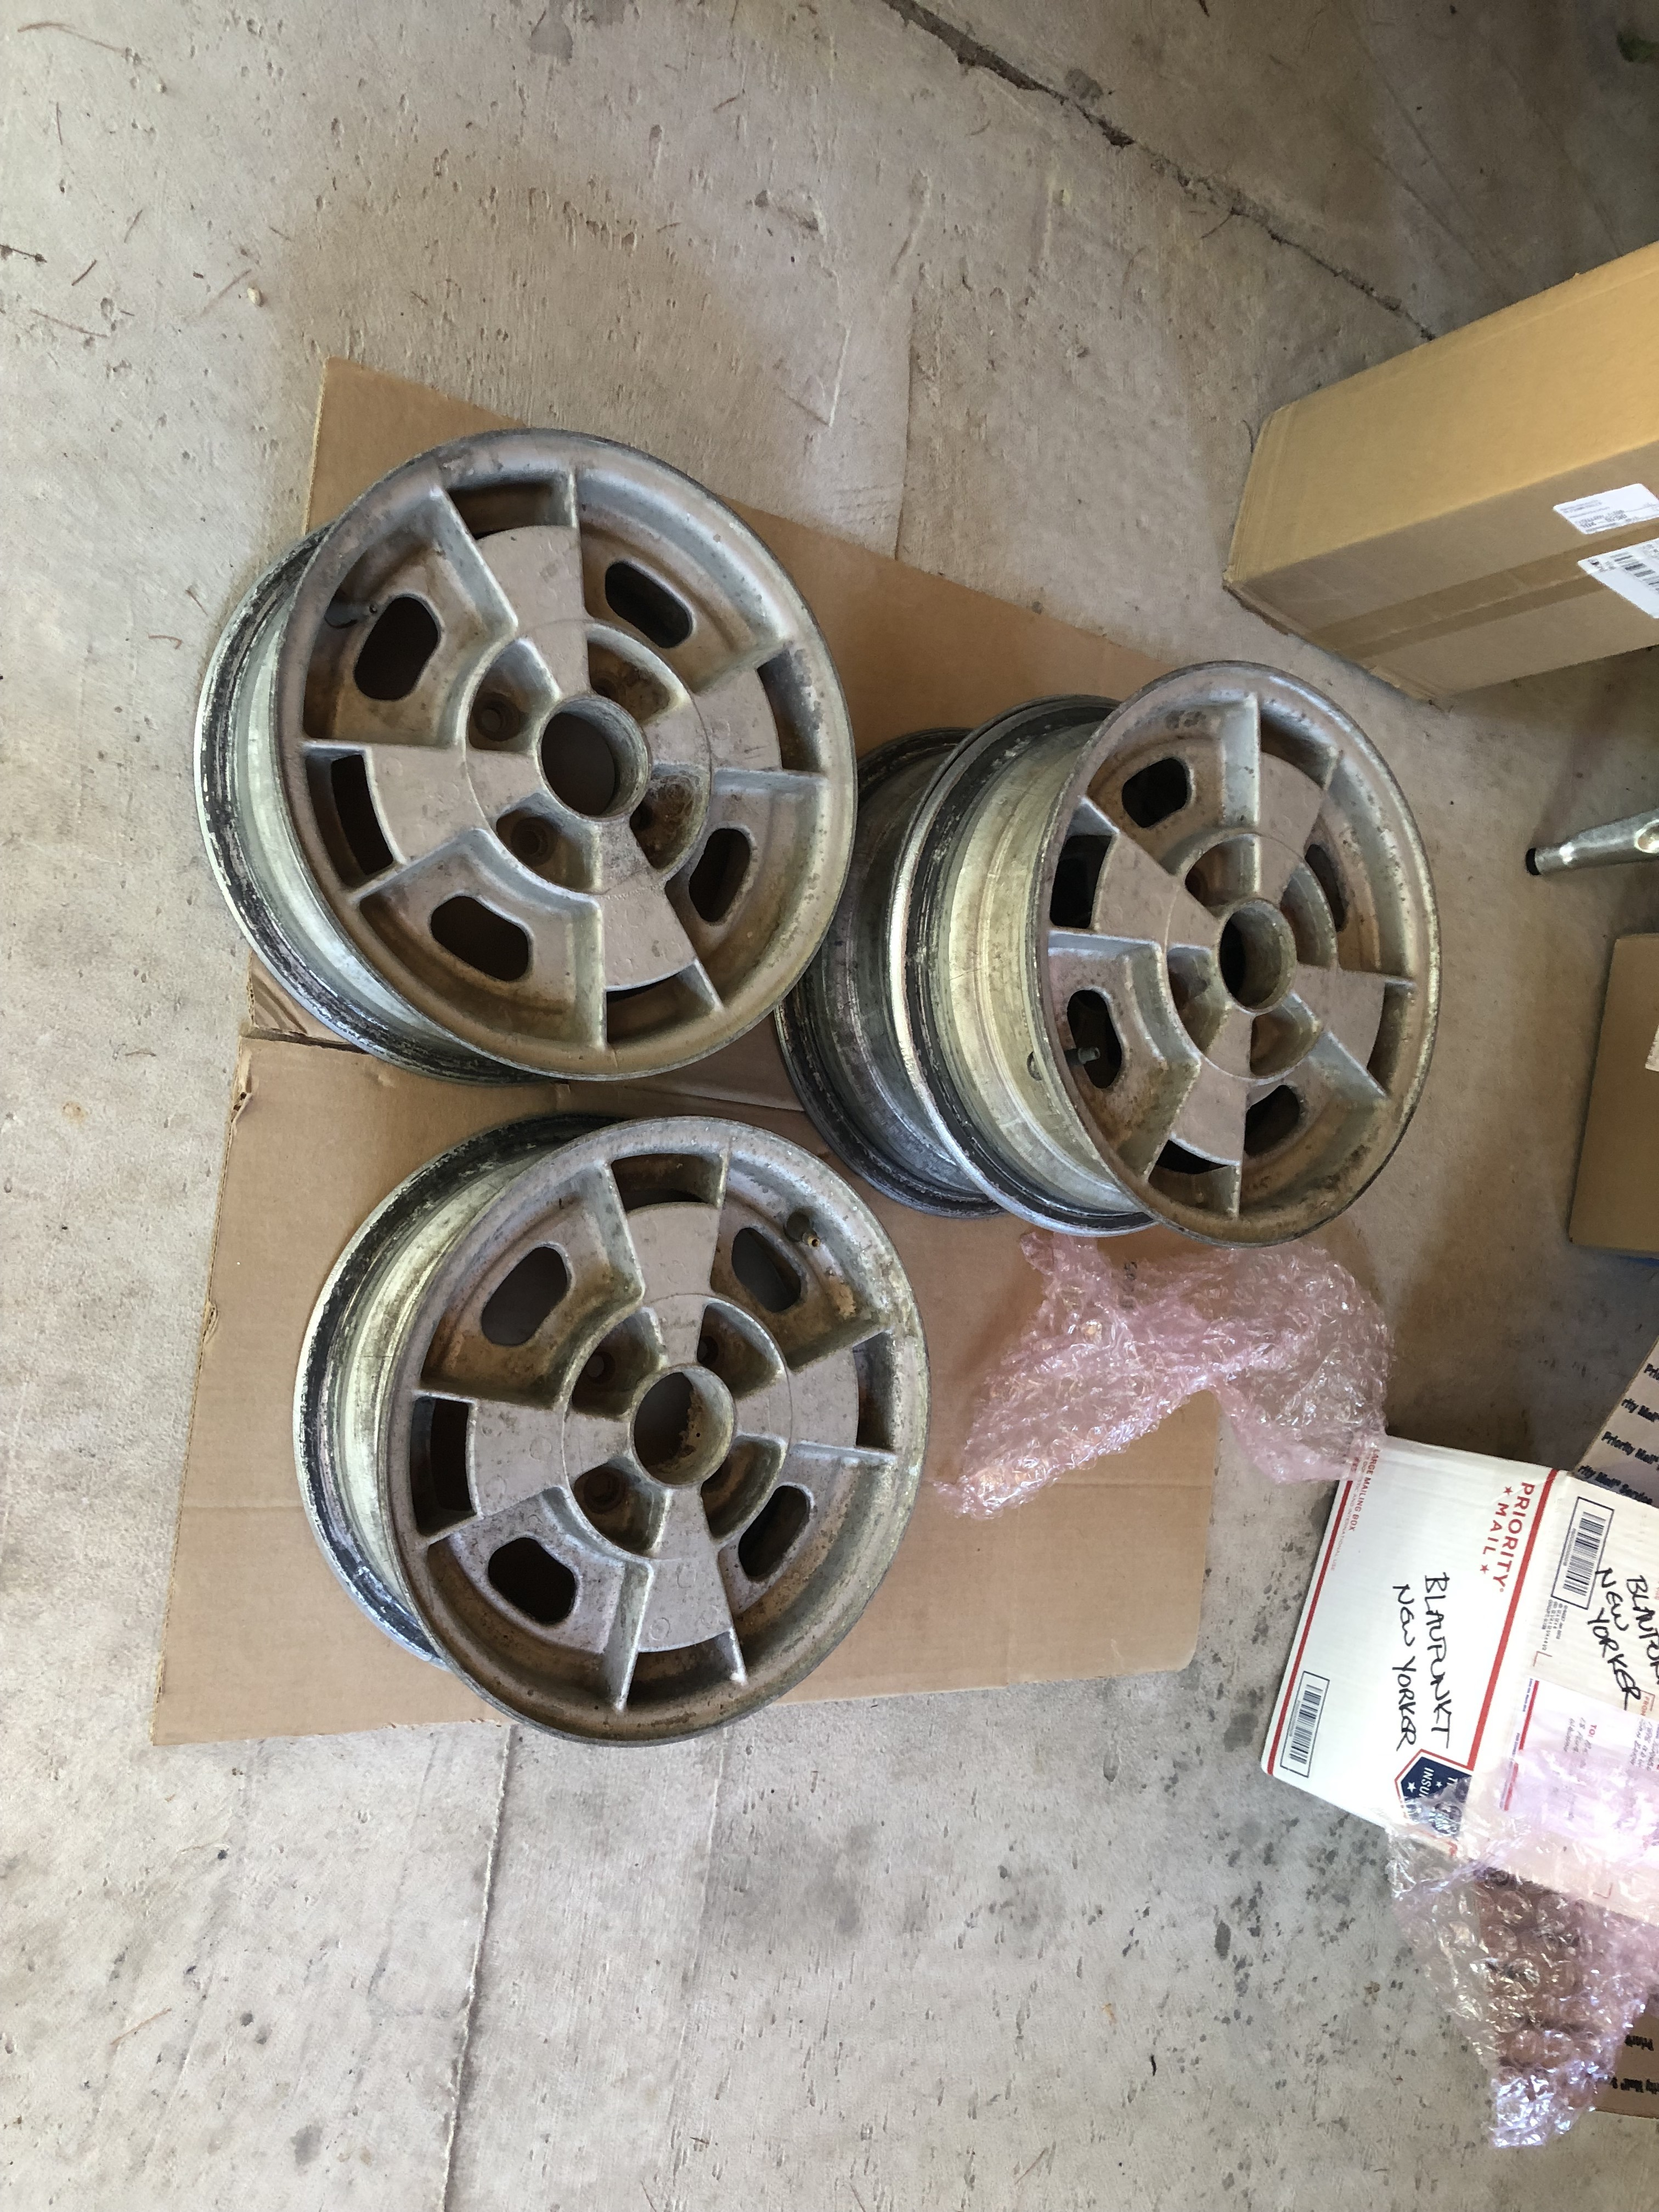 Beautiful set of Cosmic 13x5.5 alloy wheels - BMW 2002 and Neue Klasse  Parts For Sale - BMW 2002 FAQ